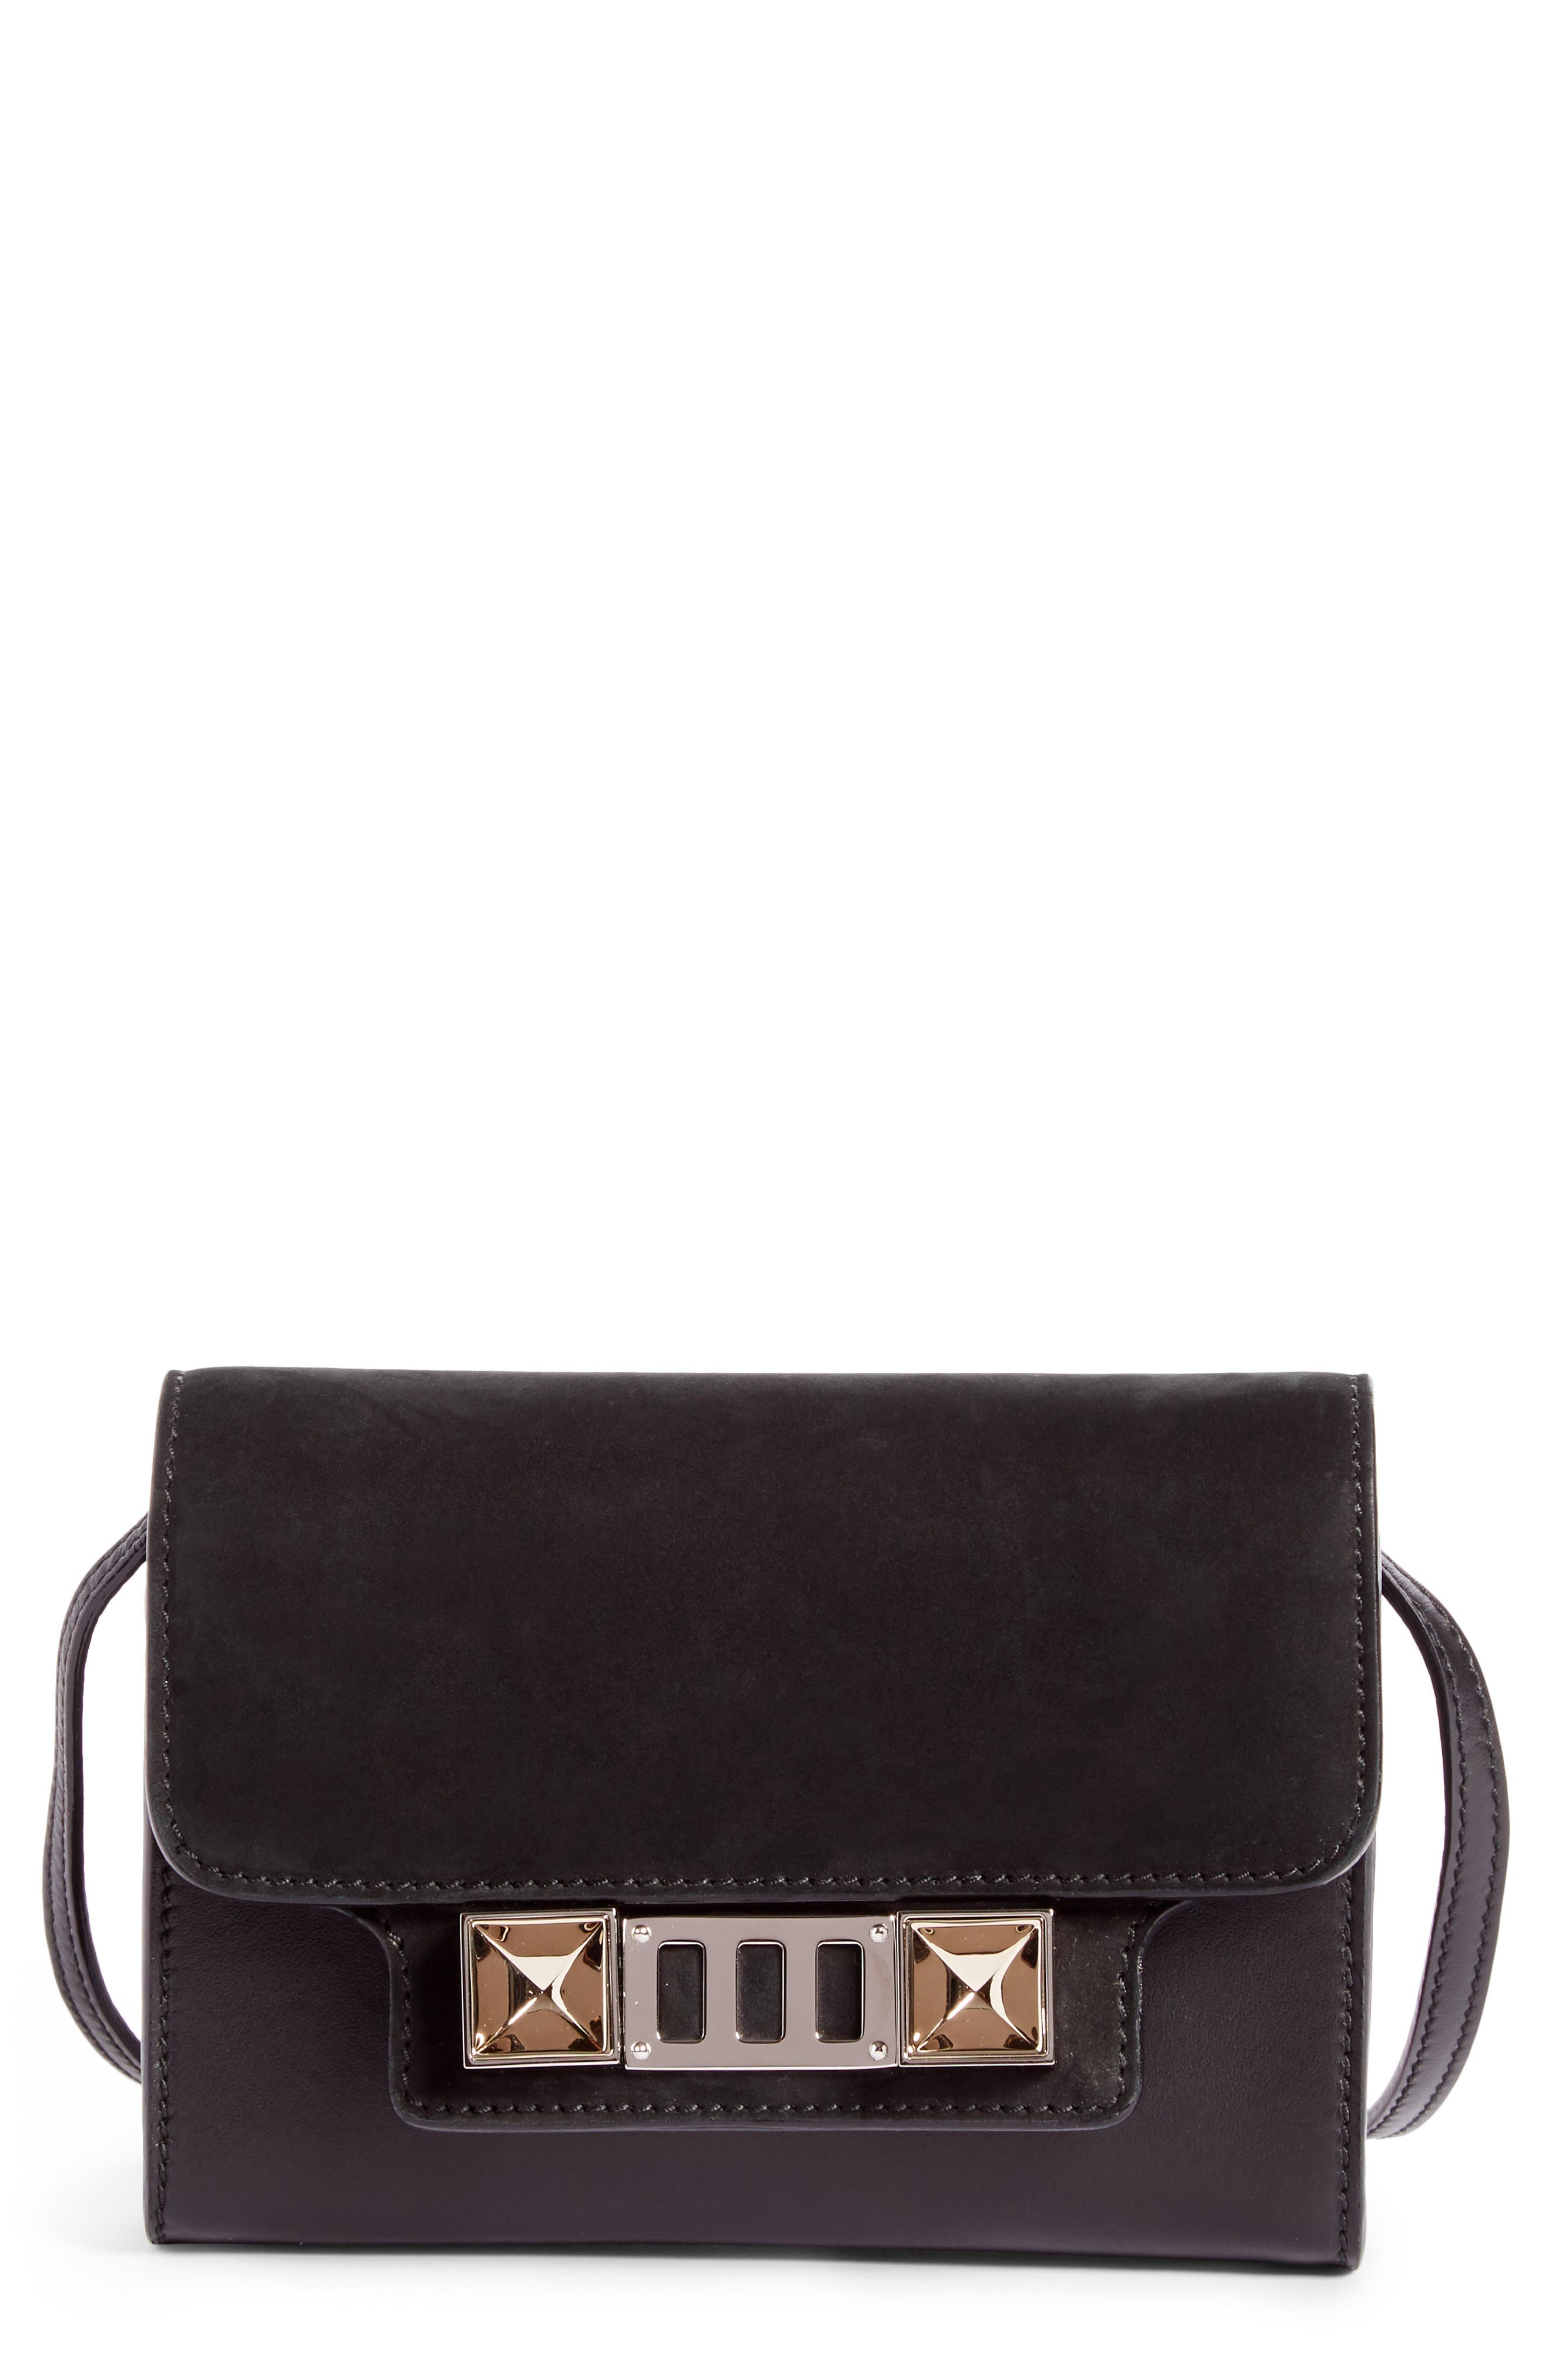 Alternate Image 1 Selected - Proenza Schouler PS11 Calfskin Leather Crossbody Wallet